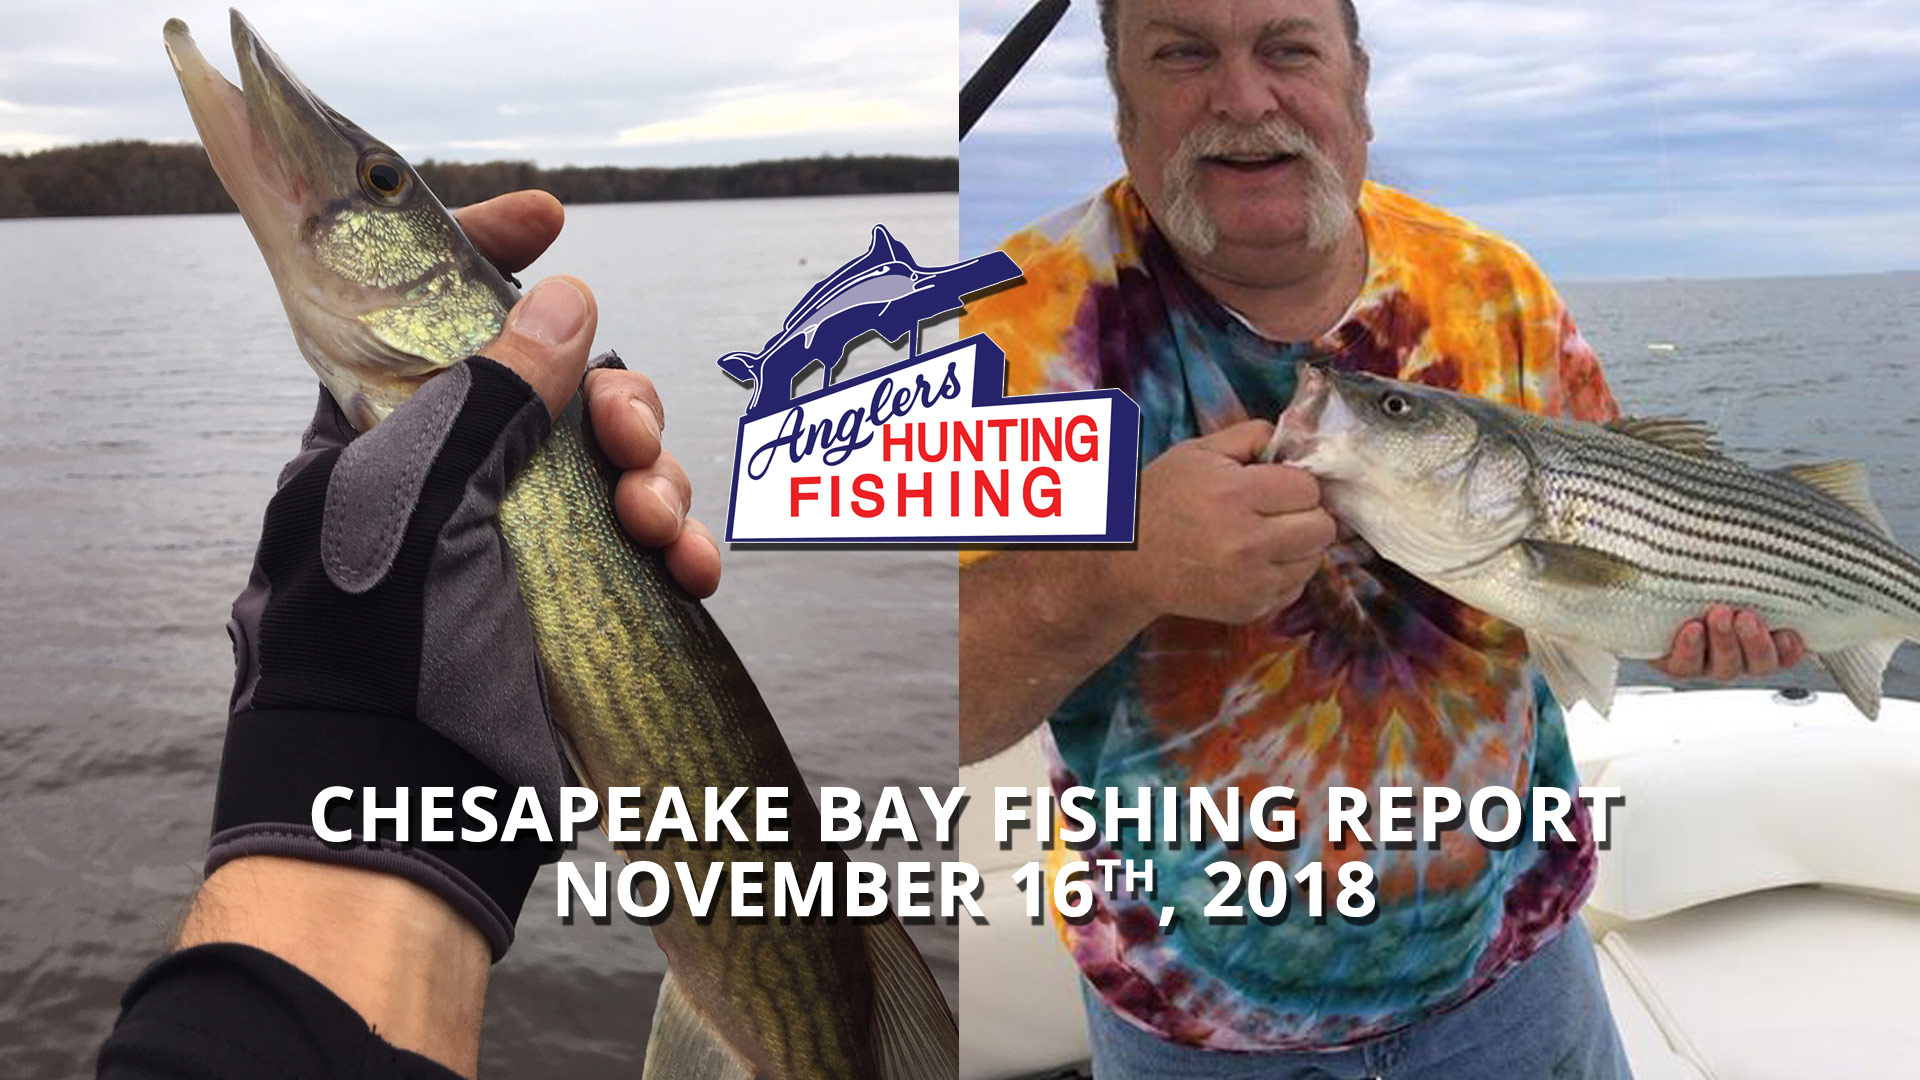 Chesapeake Bay Fishing Report - November 16th, 2018